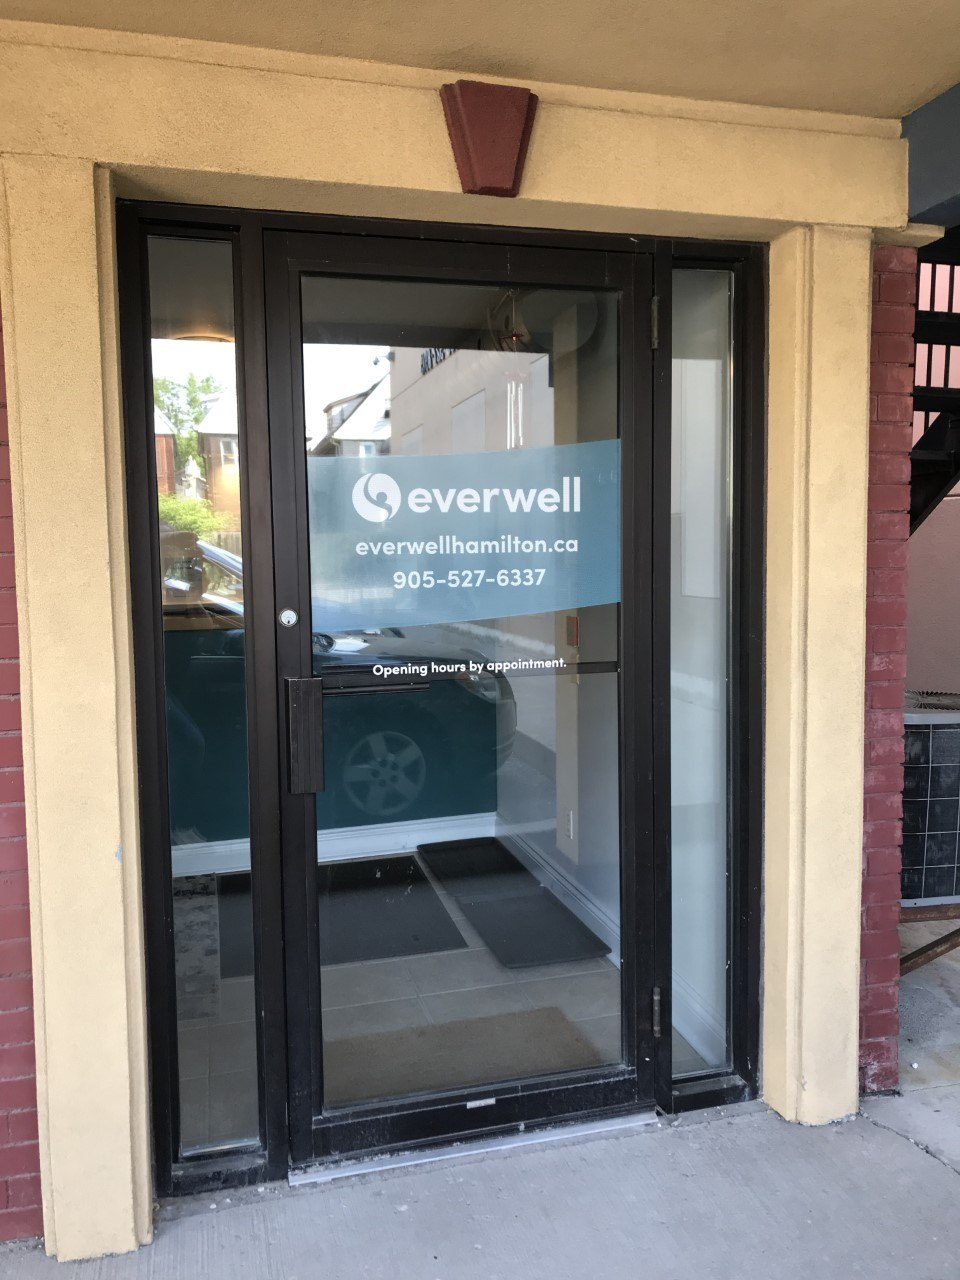 Come on in and explore what everwell has to offer.